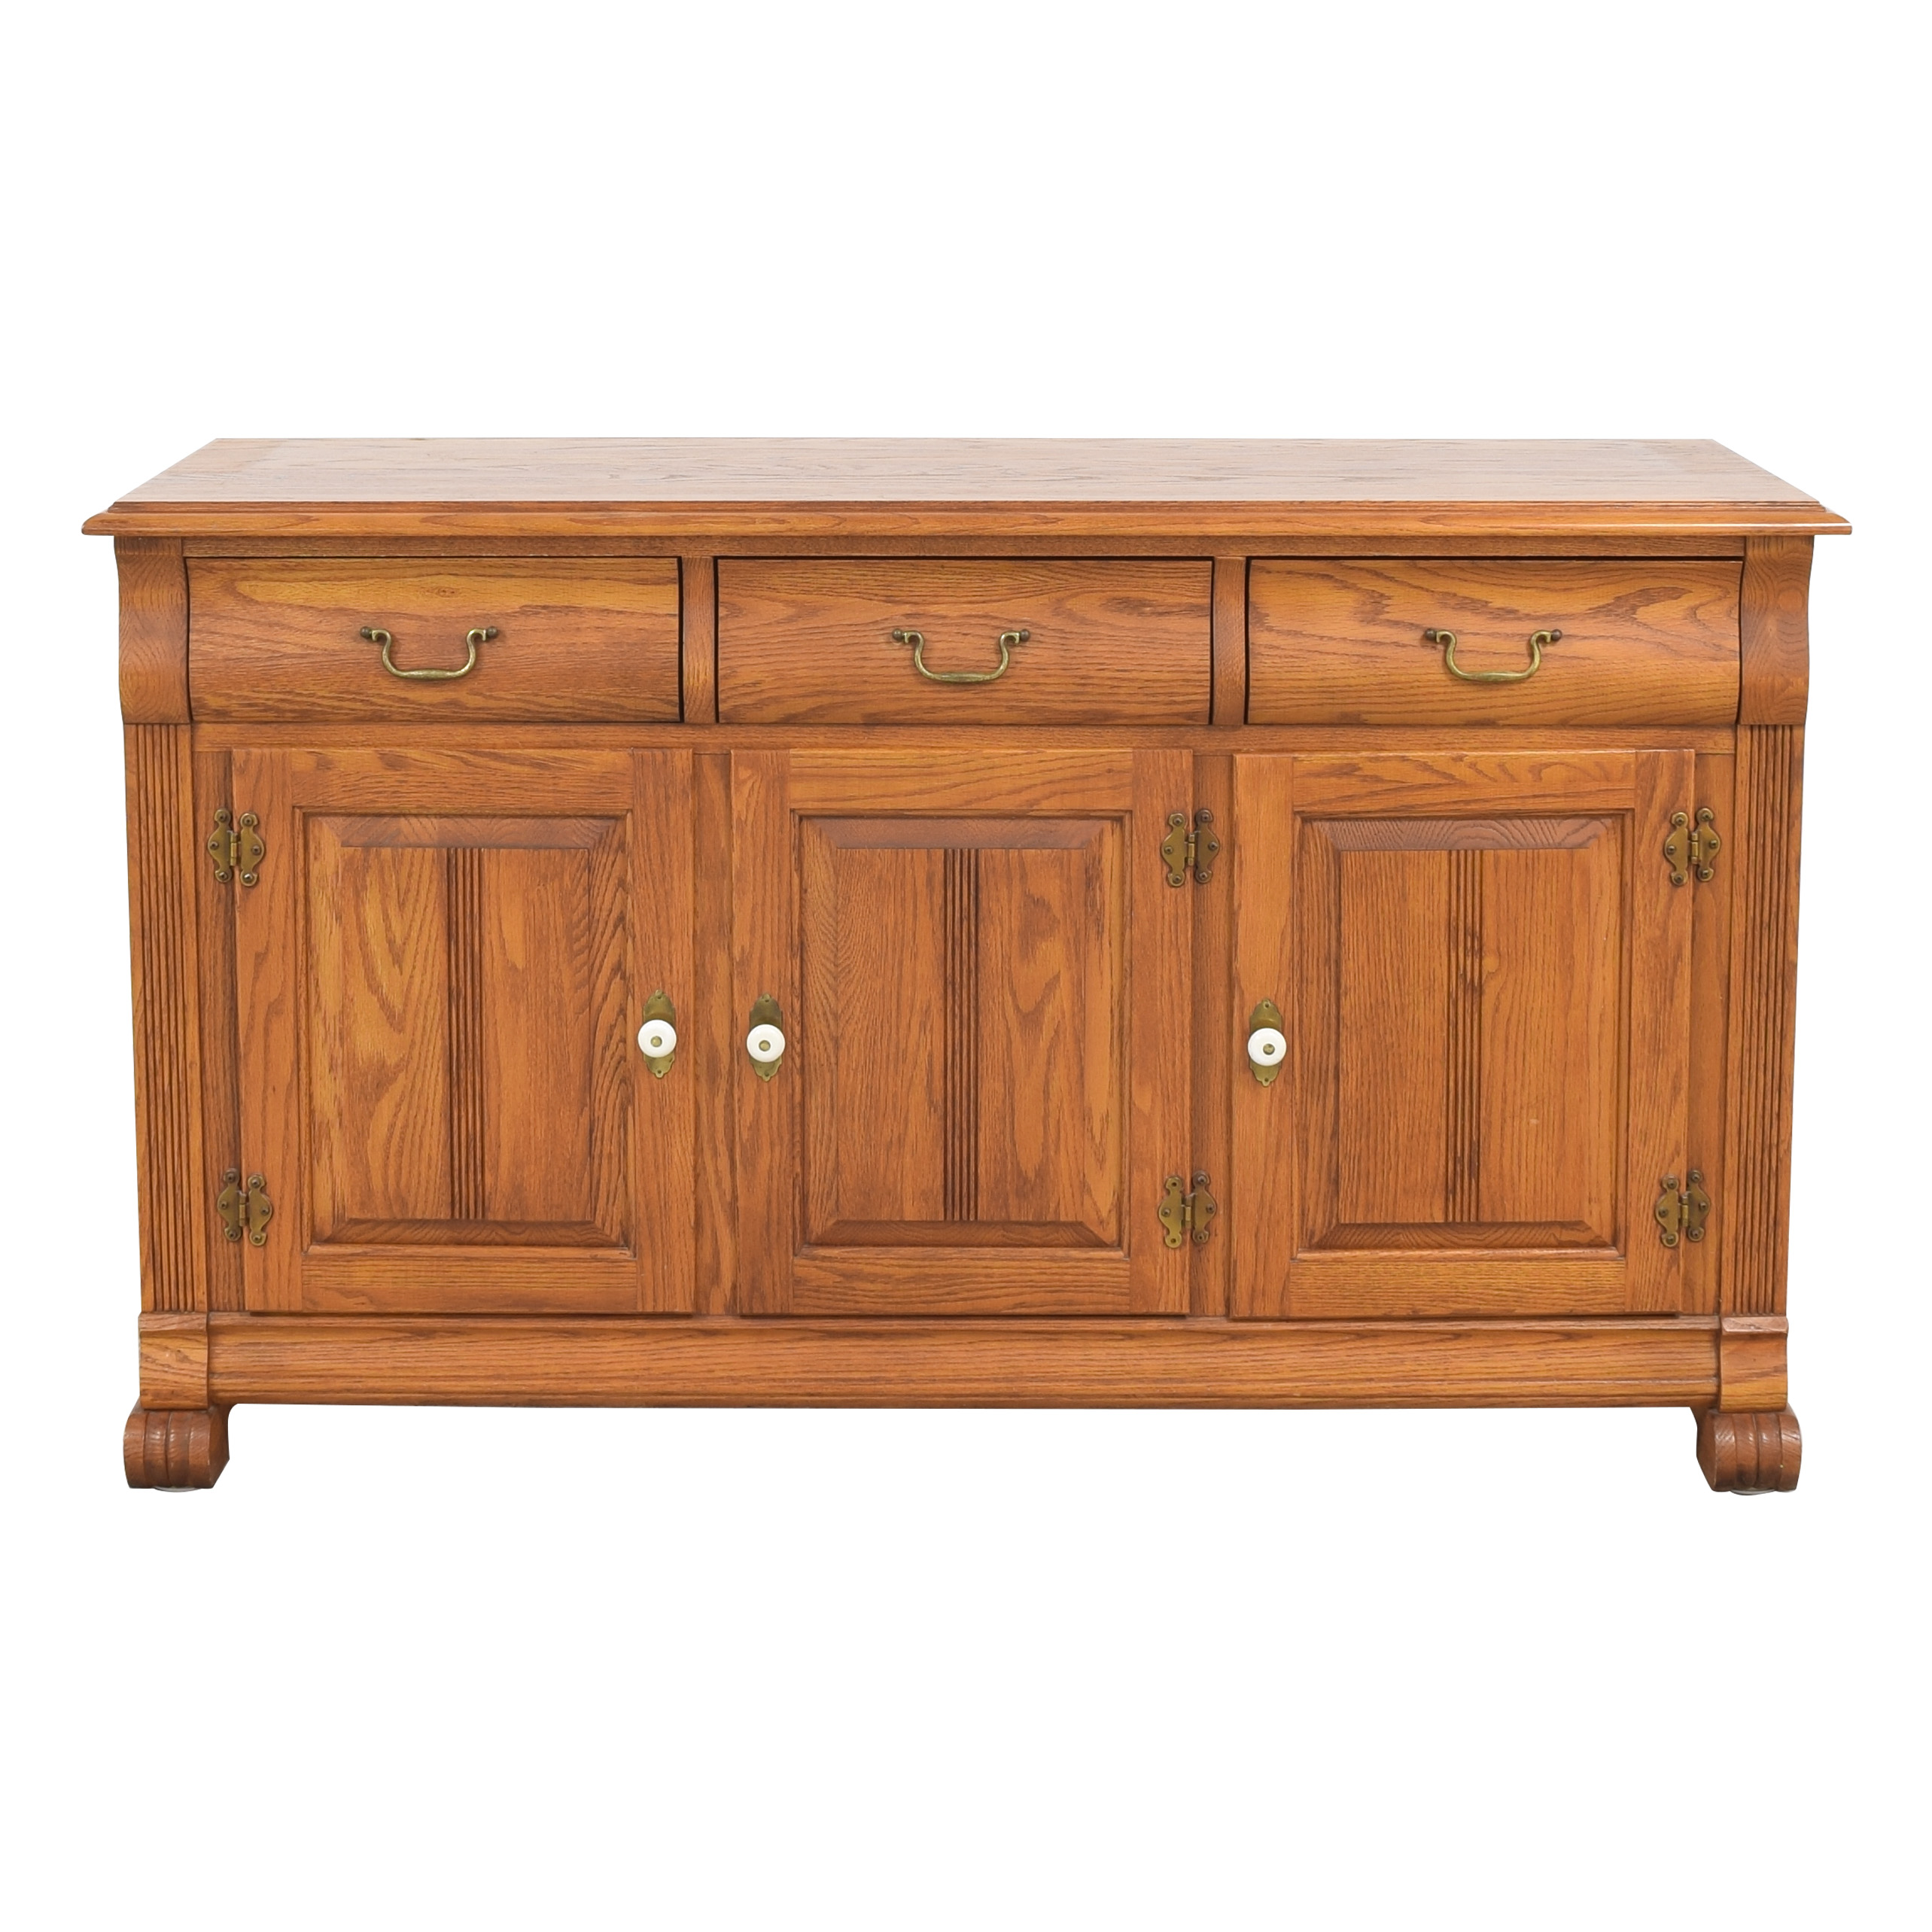 Keller Keller Three Drawer Sideboard nj